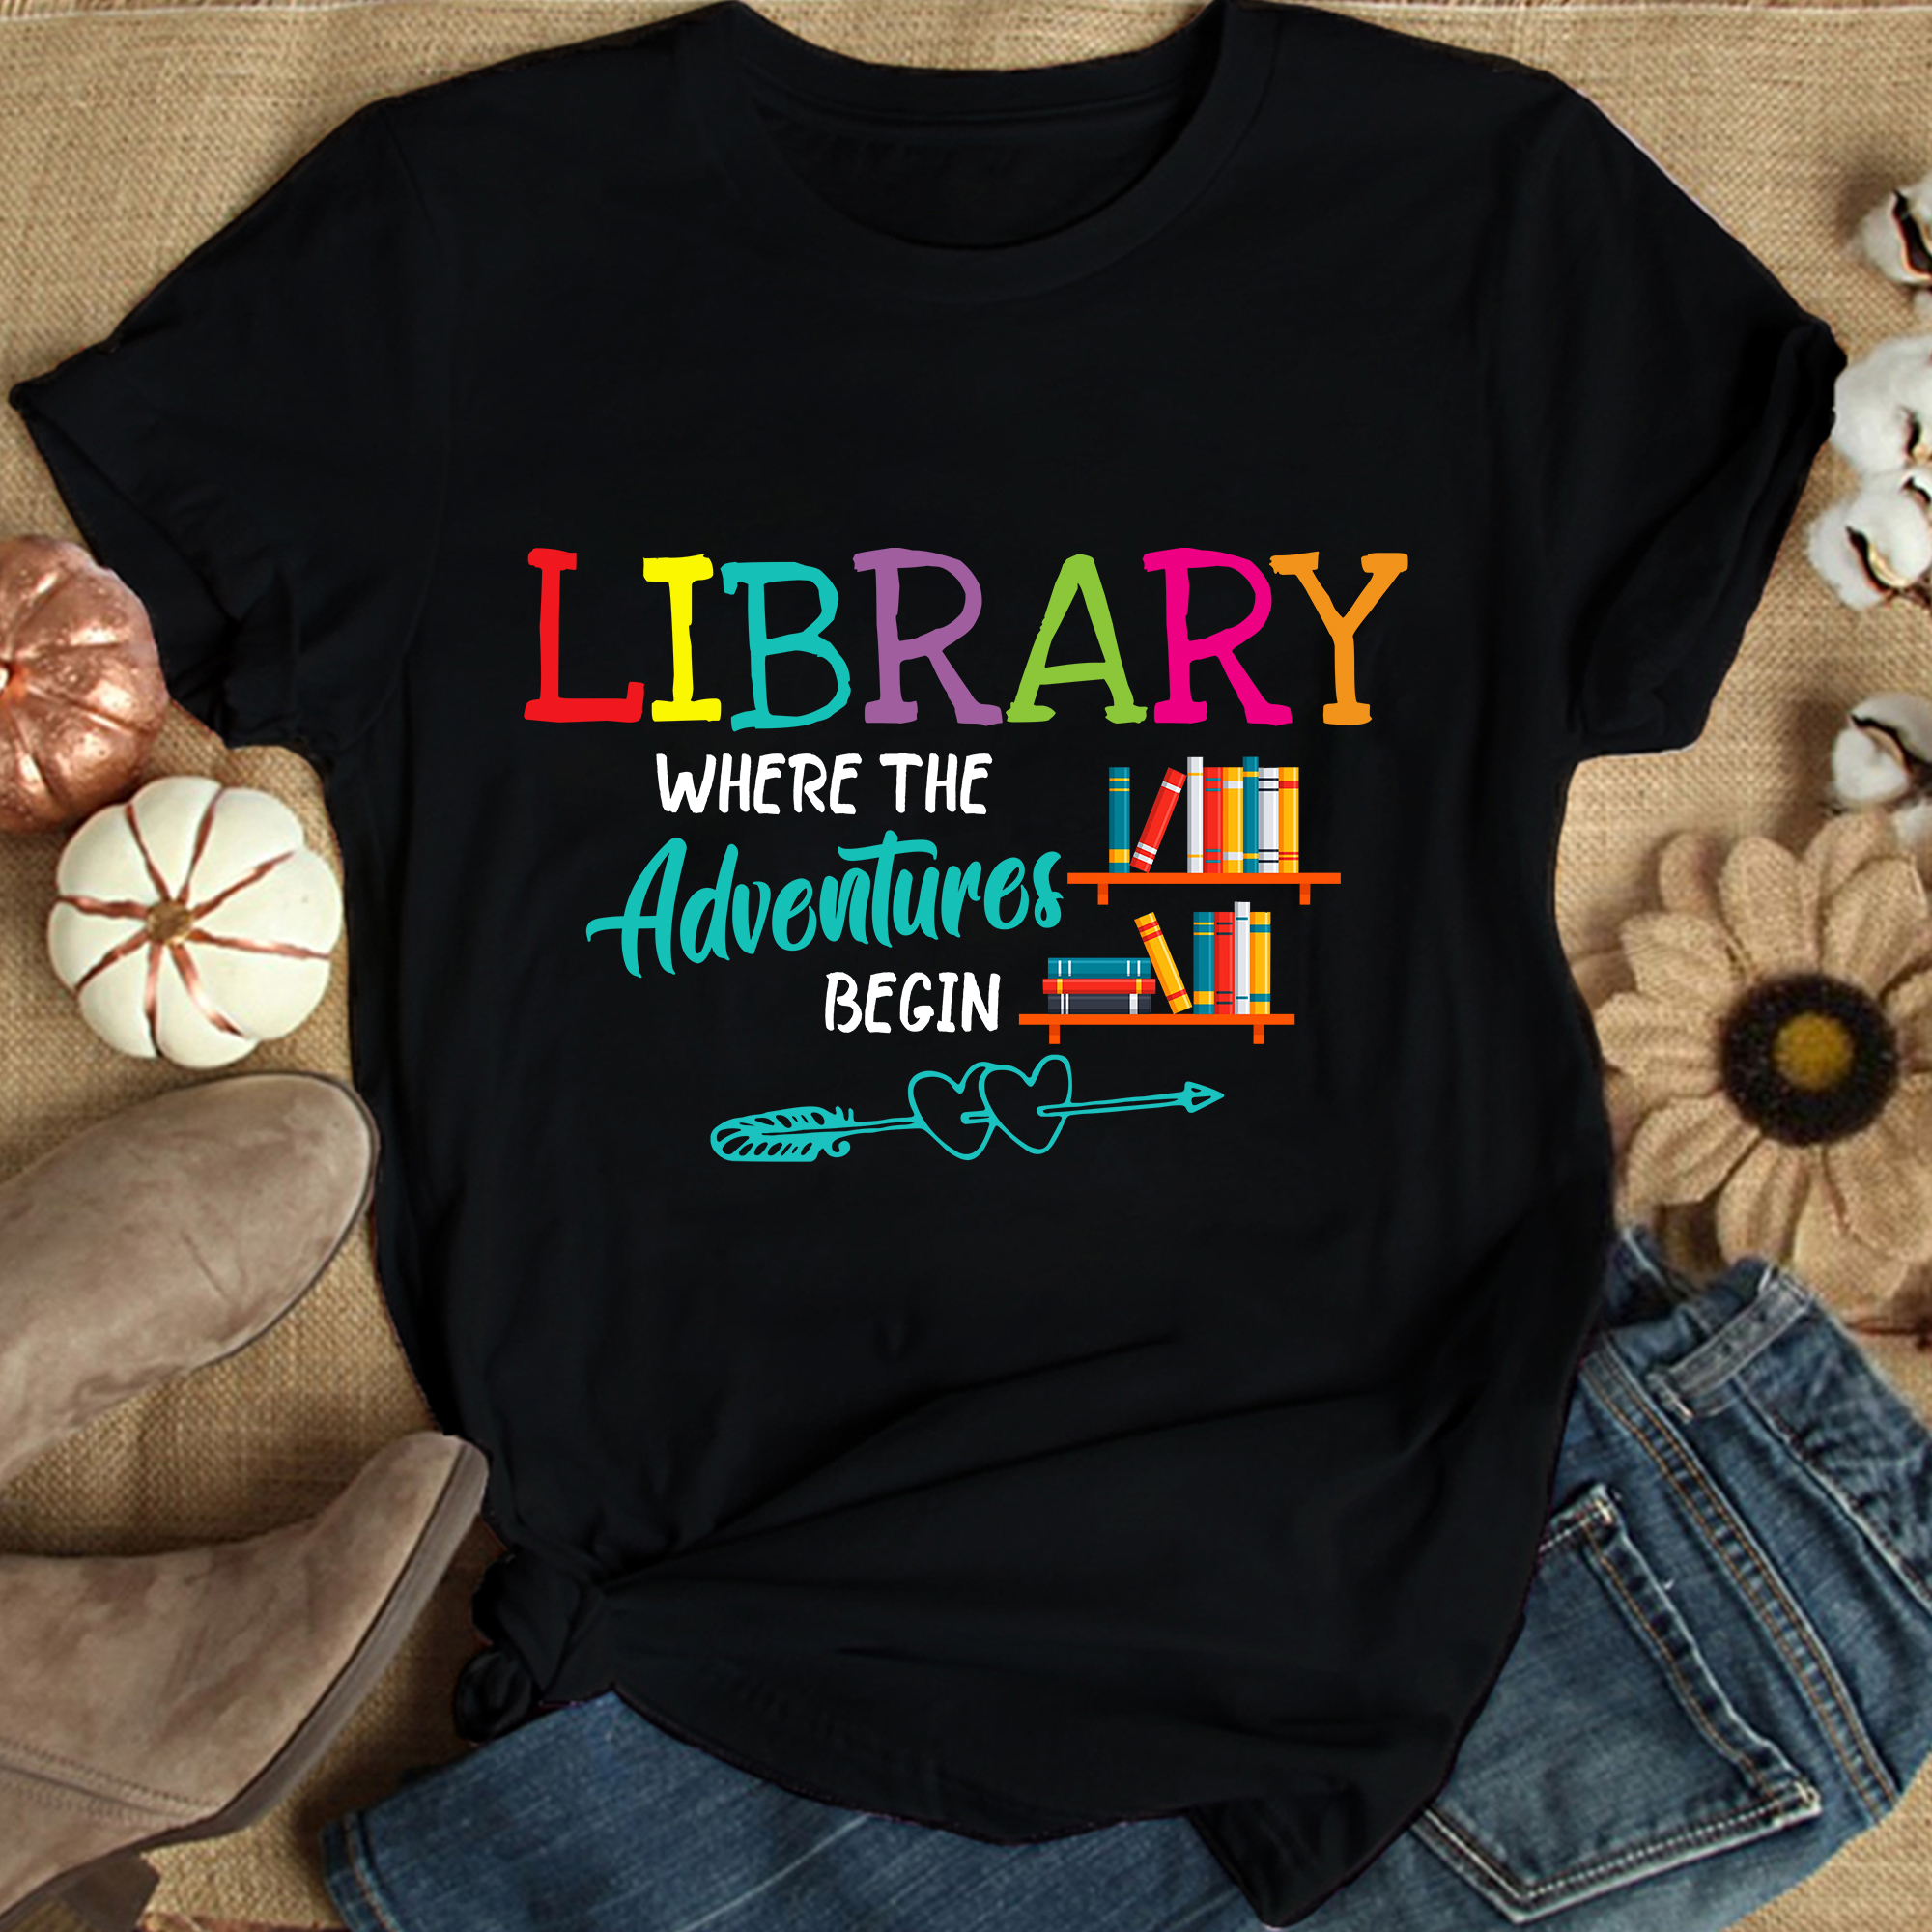 Library Shirt Where The Adventures Begin